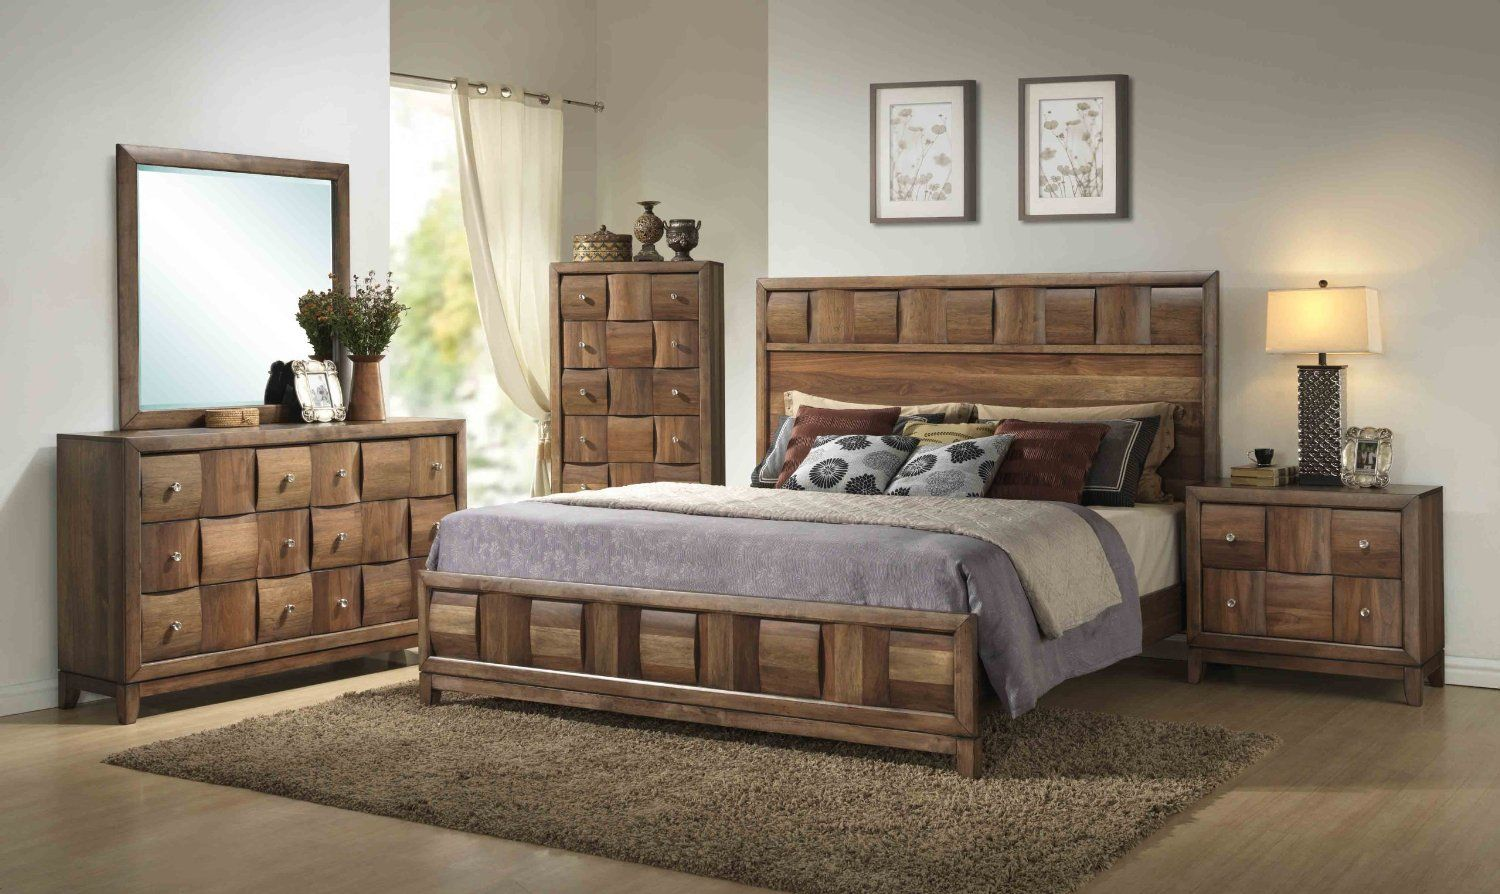 Sleigh Bed - King, Queen, Twin, Upholstered